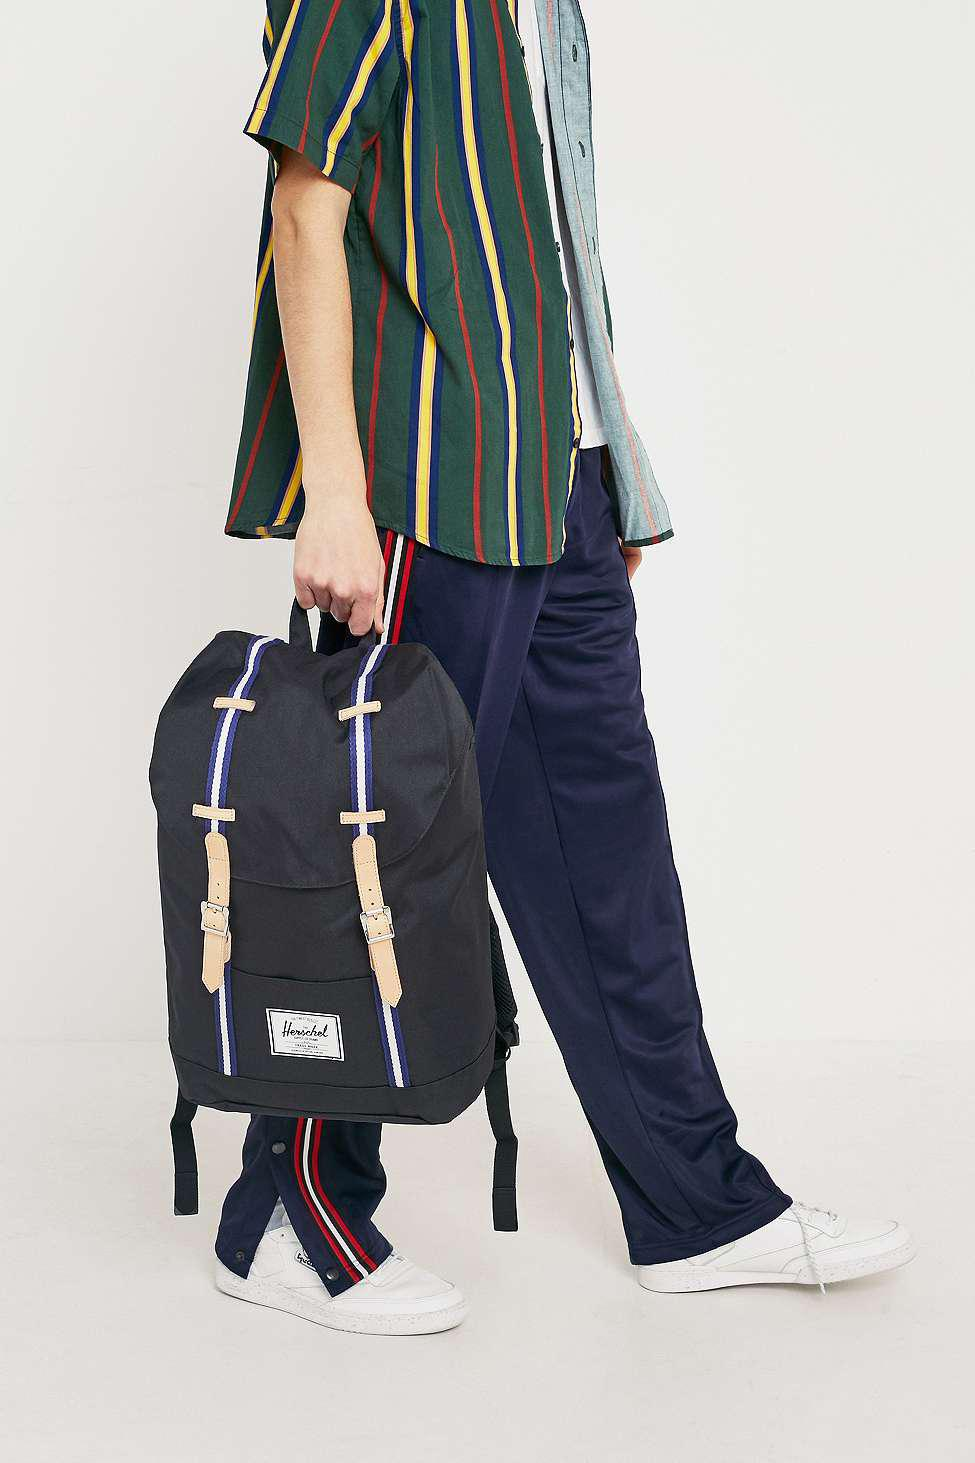 3cd8e9a396 Herschel Supply Co. - Retreat Ofst Black And Blue Backpack - Mens All for  Men